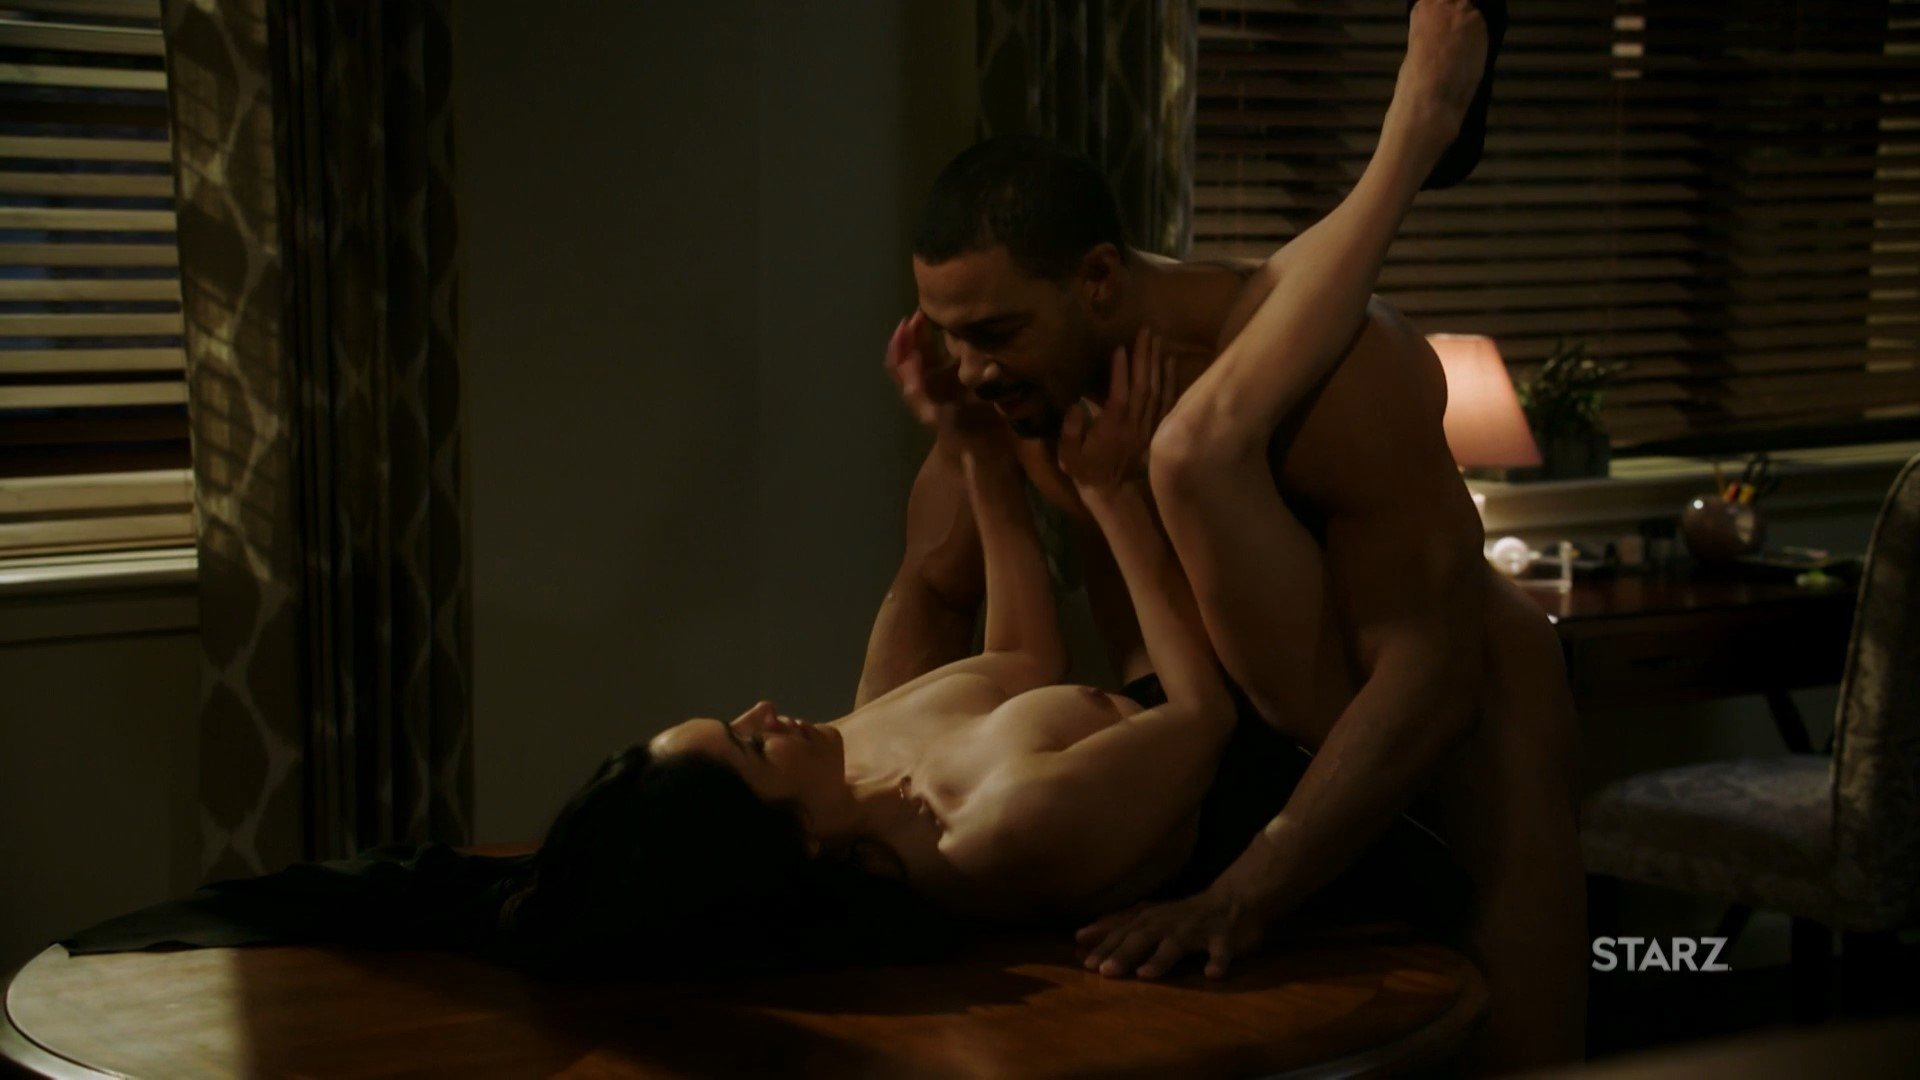 Lela loren sex at work doggystyle amp bare butt power s03e01 2016